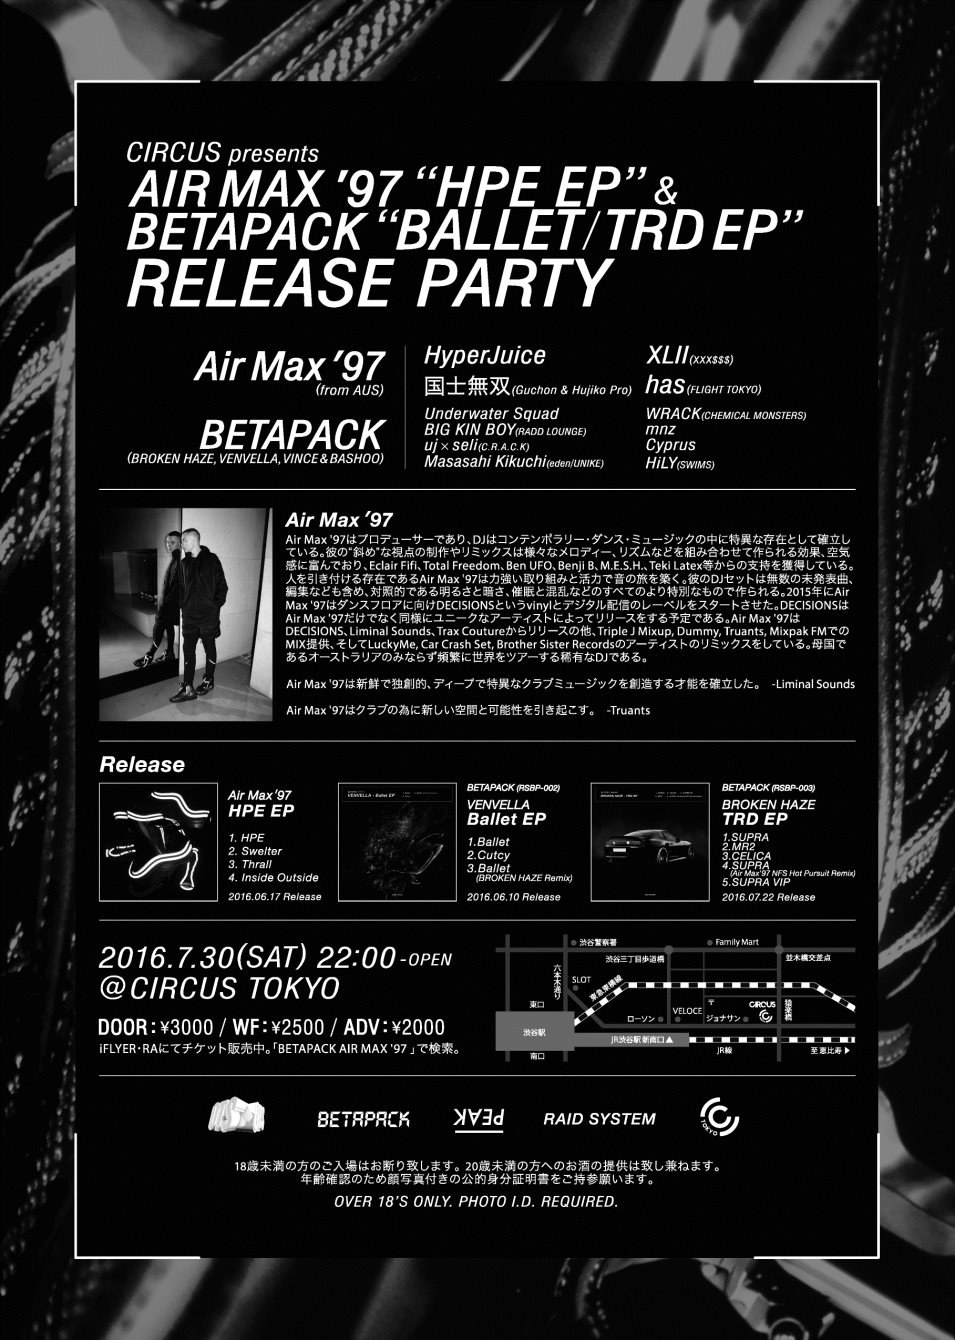 """Circus presents AIR MAX '97 """"HPE EP"""" & Betapack """"Ballet / TRD EP"""" Release Party - Flyer back"""